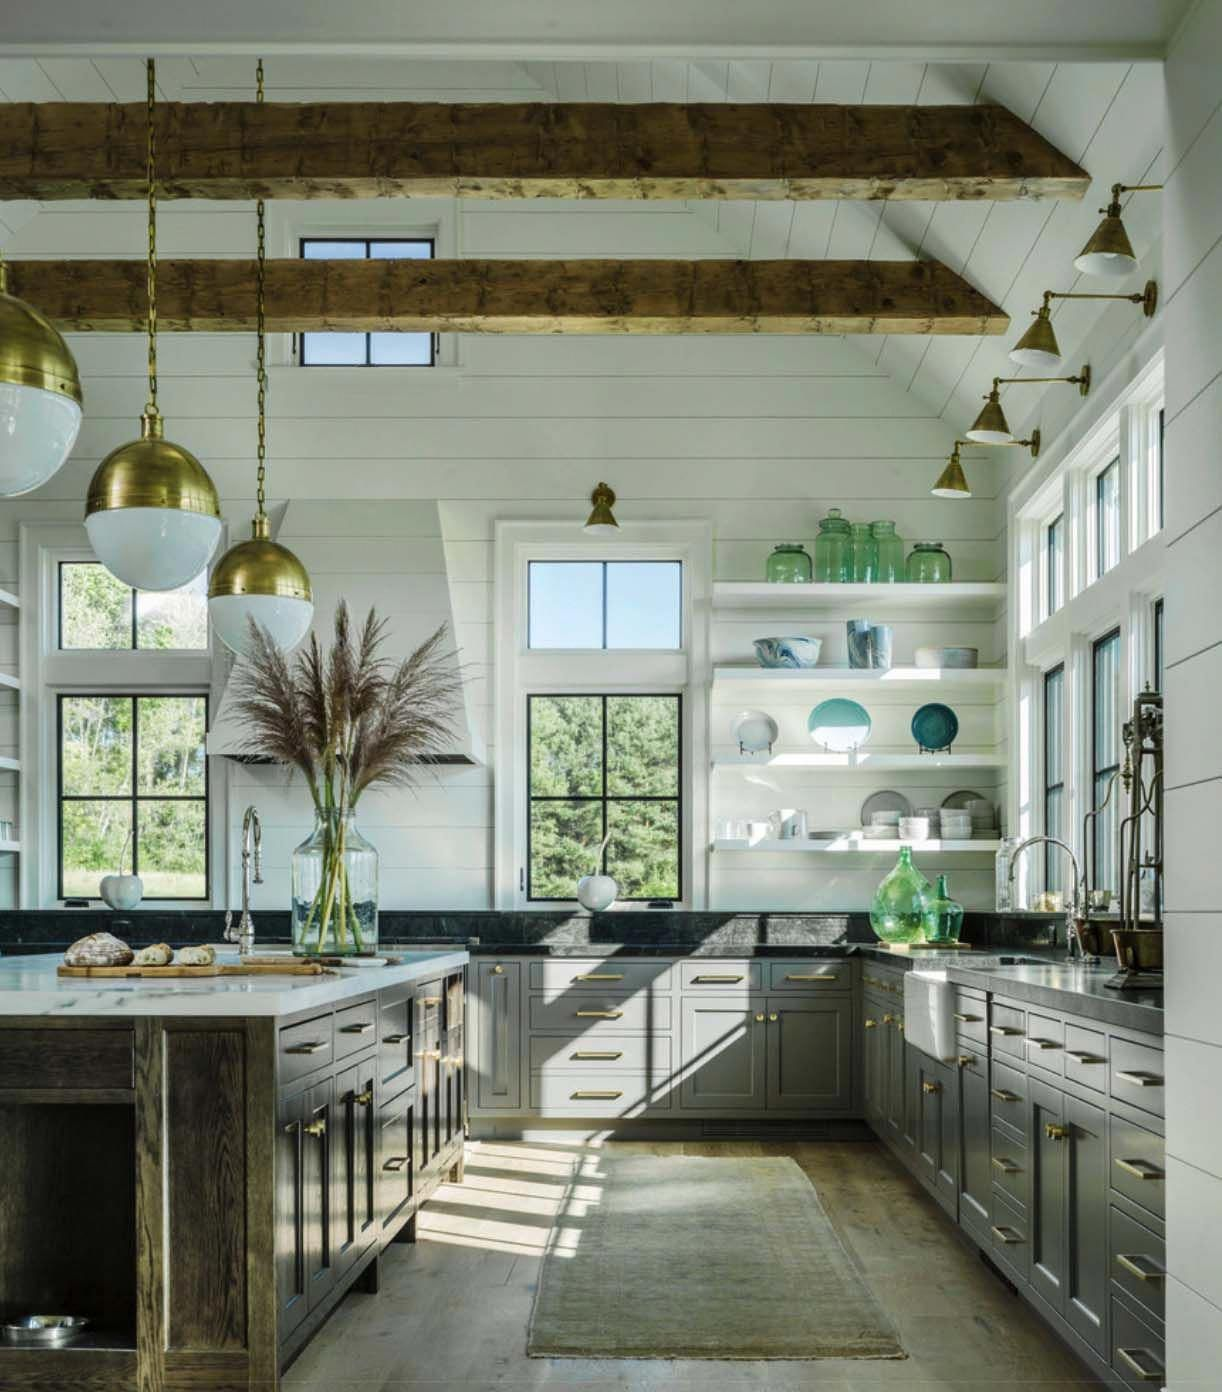 Traditional Farmhouse Style Dwelling In Vermont With A Modern Twist Chicmodernhomed Farmhouse Kitchen Design Interior Design Kitchen Modern Farmhouse Kitchens